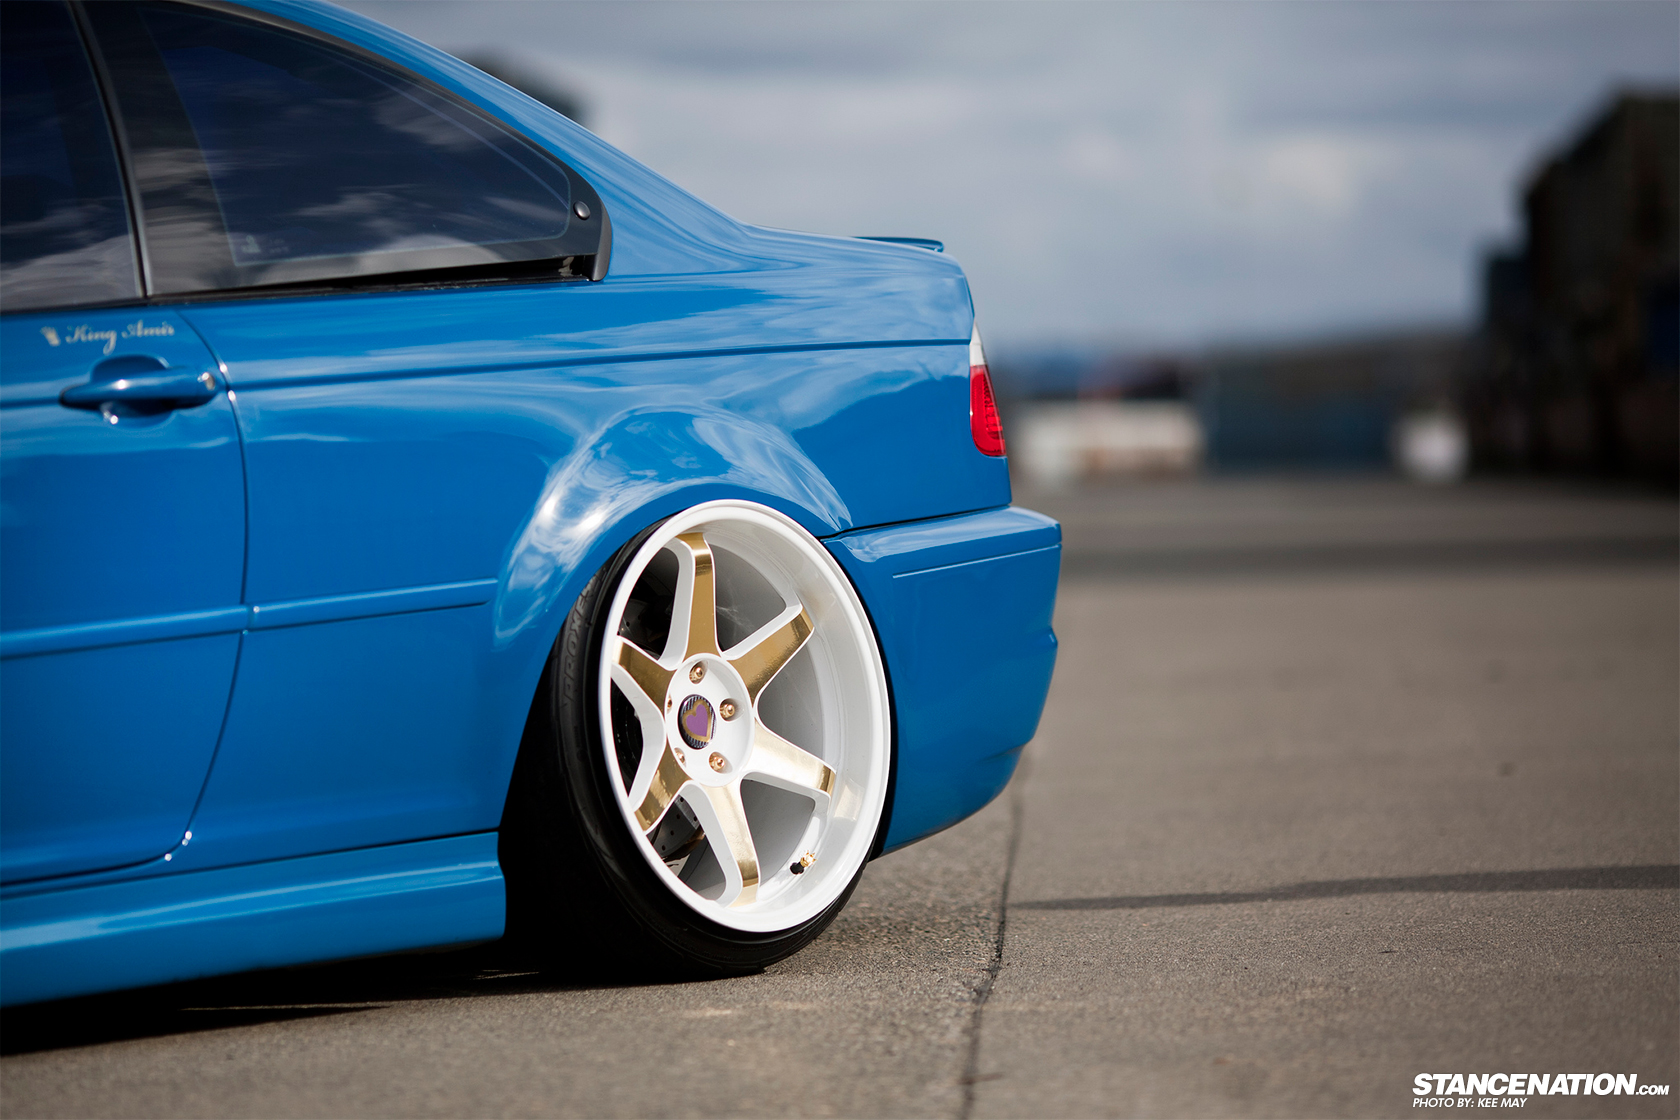 Laguna Seca Beauty Amir S Low Bmw M3 Stancenation Form Function